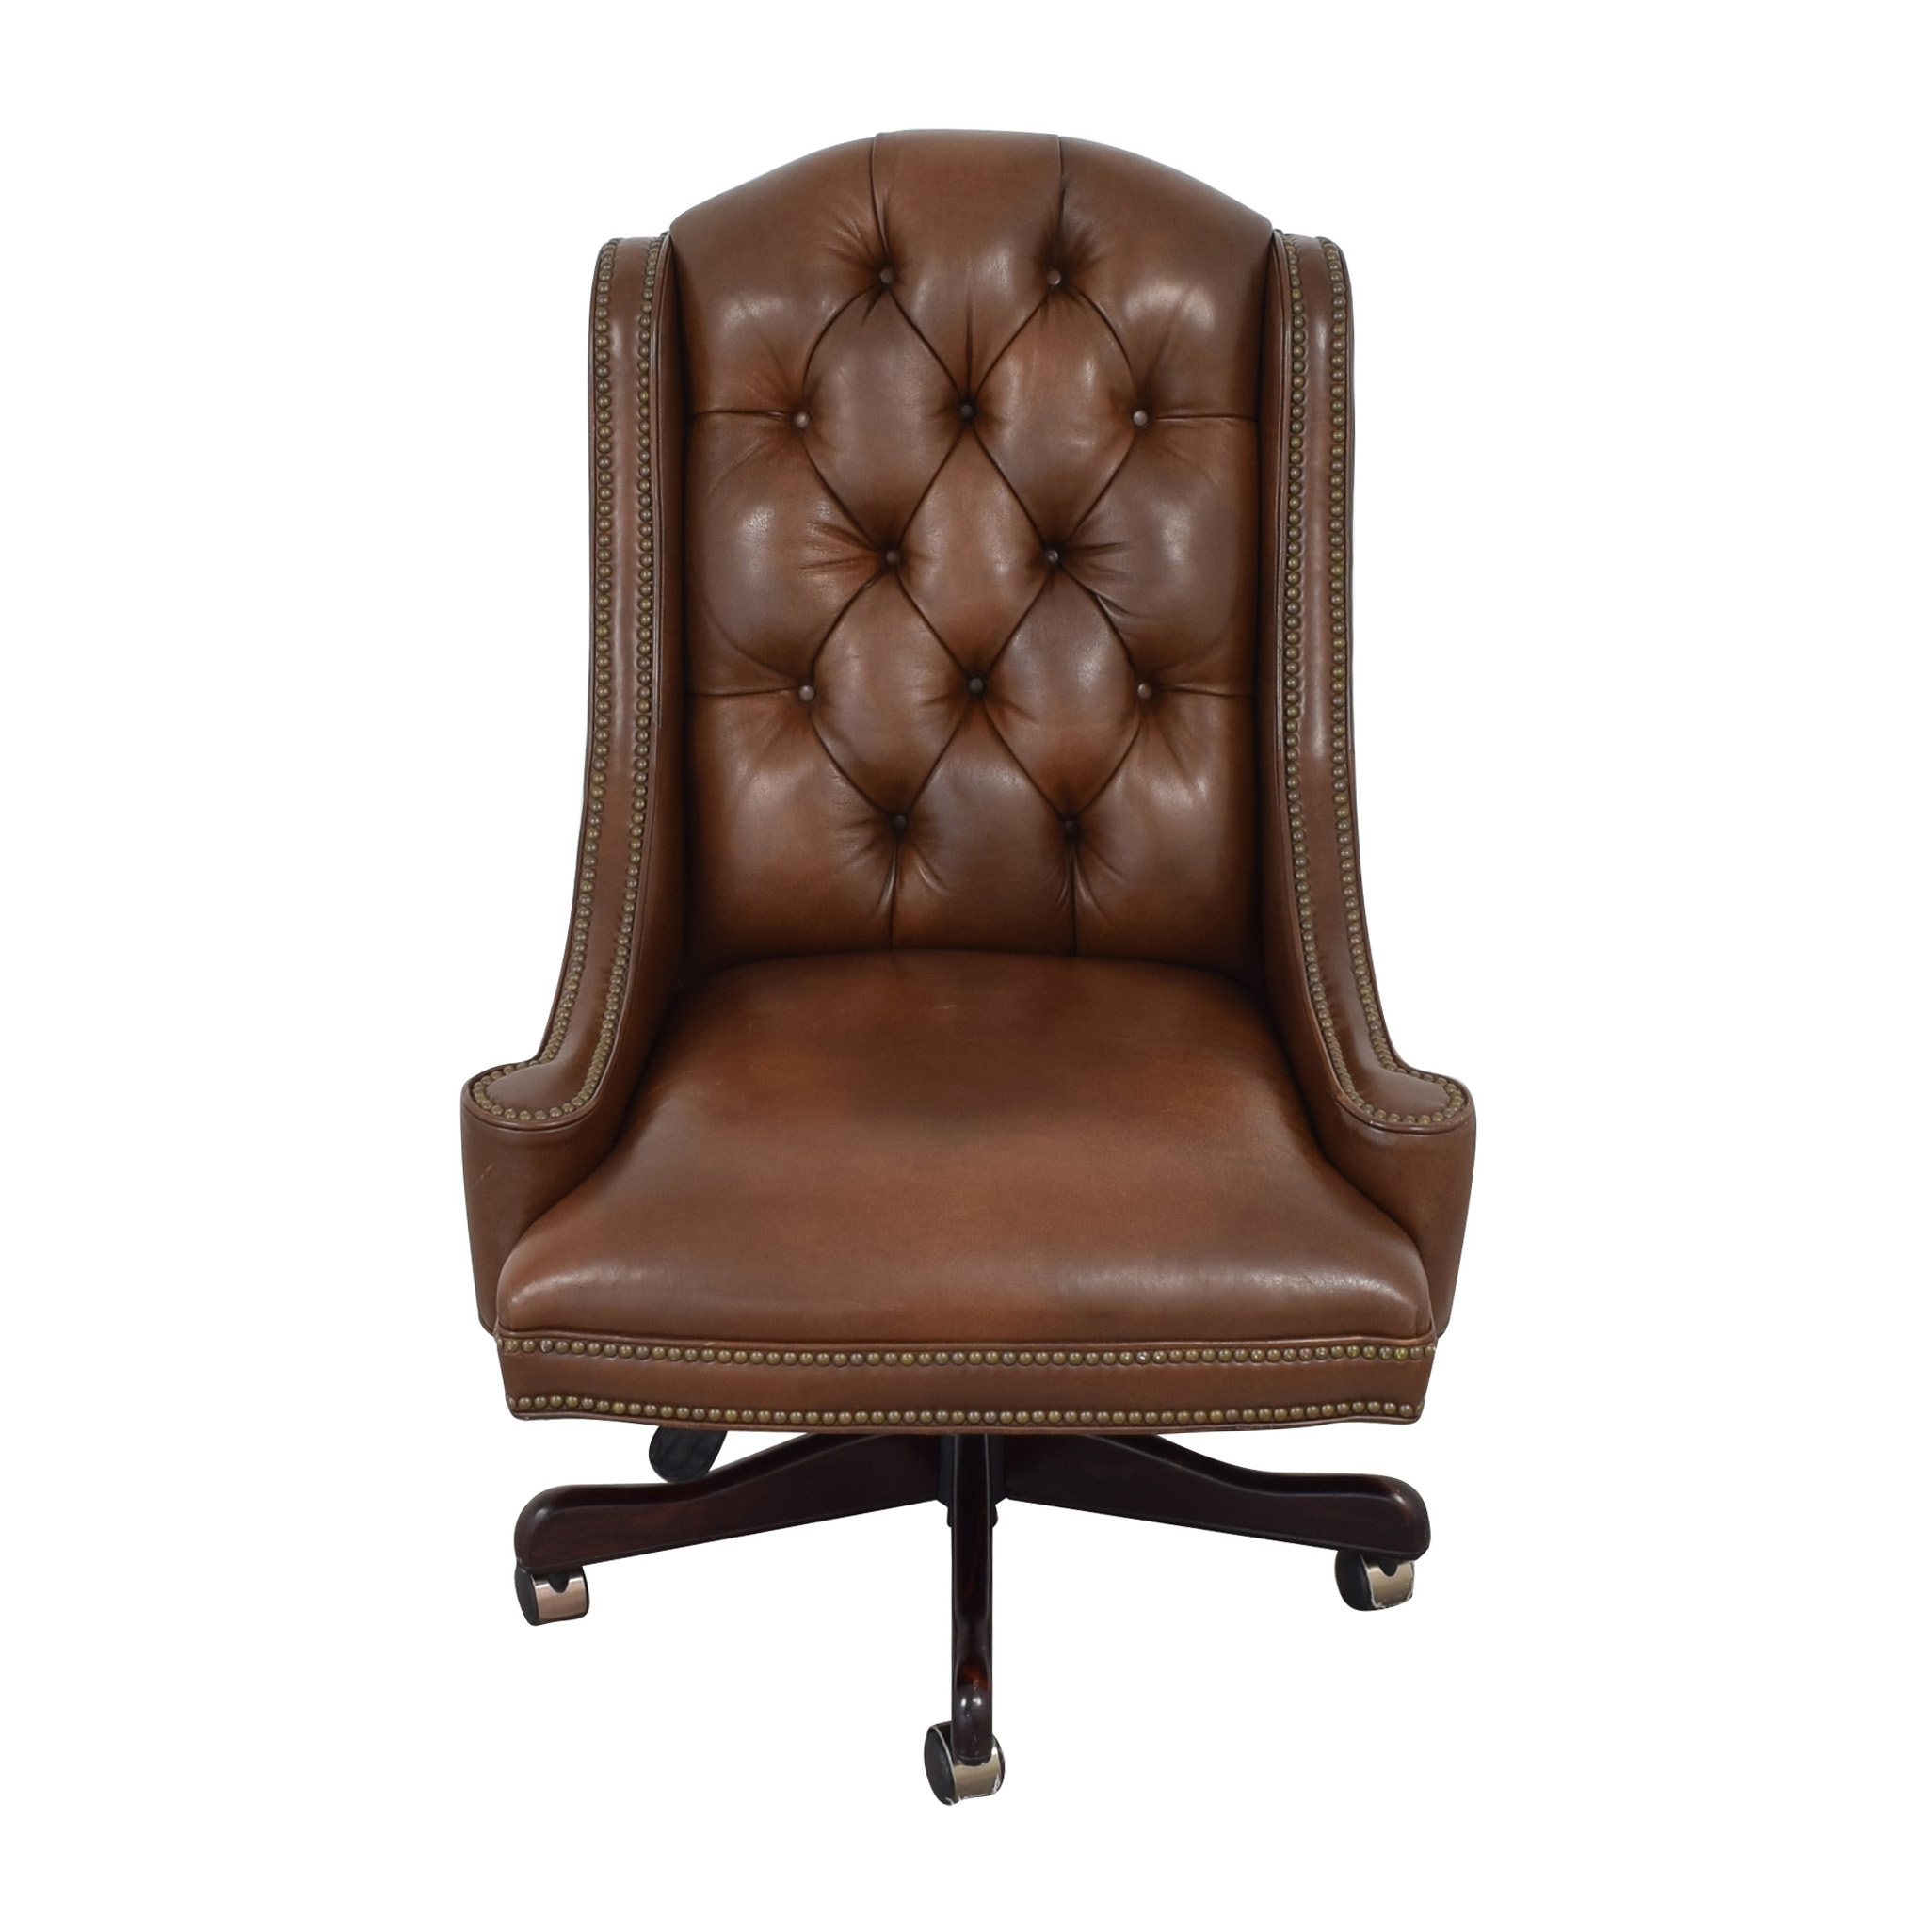 Our House Designs Our House Designs Swivel Chair for sale